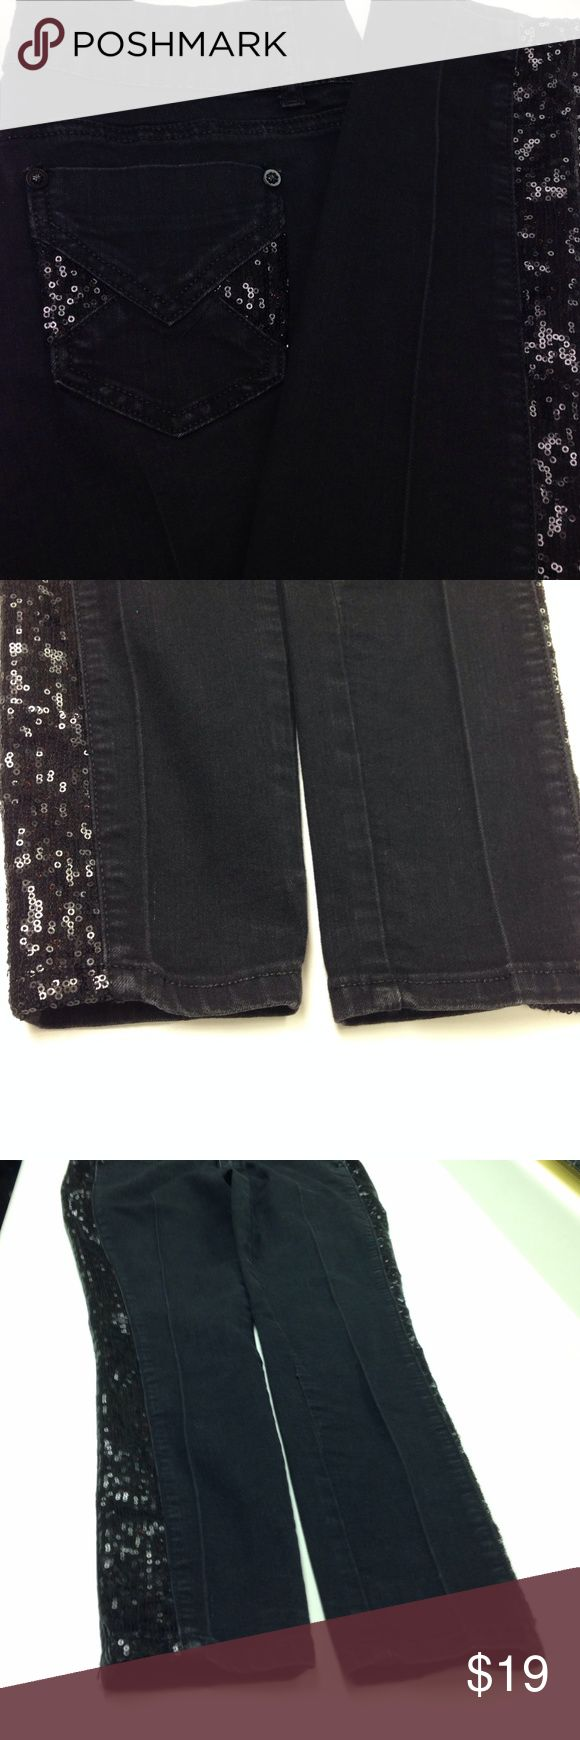 2b bebe Black Sequin Jeans 2b bebe black jeans with black sequins on back pockets and down length of sides of each pant leg. There is a PRESSED SEAM down length of front and back of pant legs. The seam is off center on right leg. Jeans have some faded spots but are in good condition. Price is reflective of jean flaws. Skinny jeans/jean legging type bebe Jeans Skinny